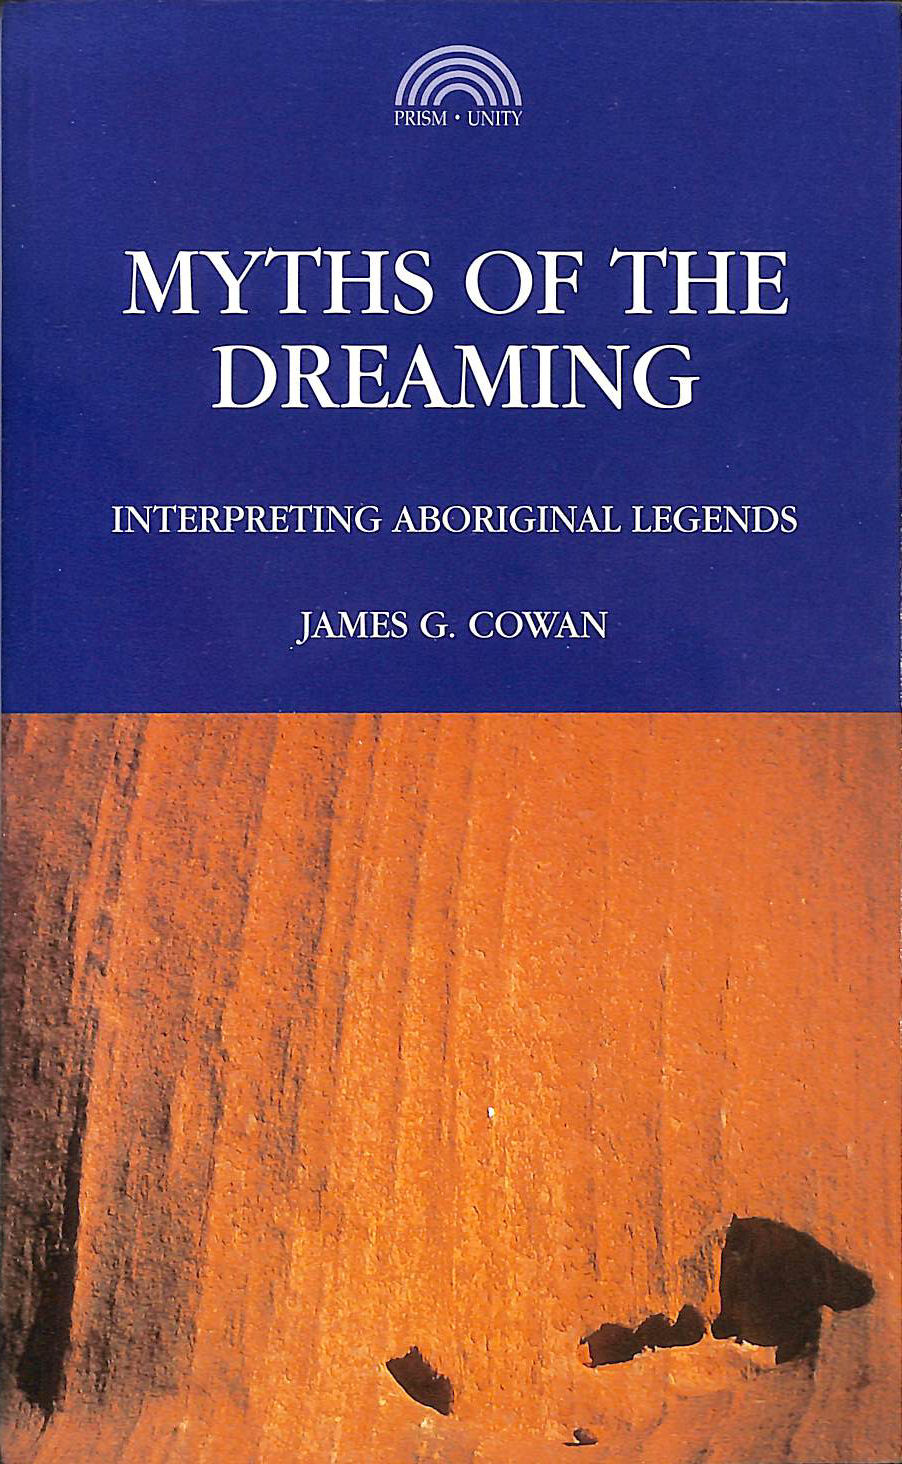 Image for Myths of the Dreaming: Interpreting Aboriginal Legends